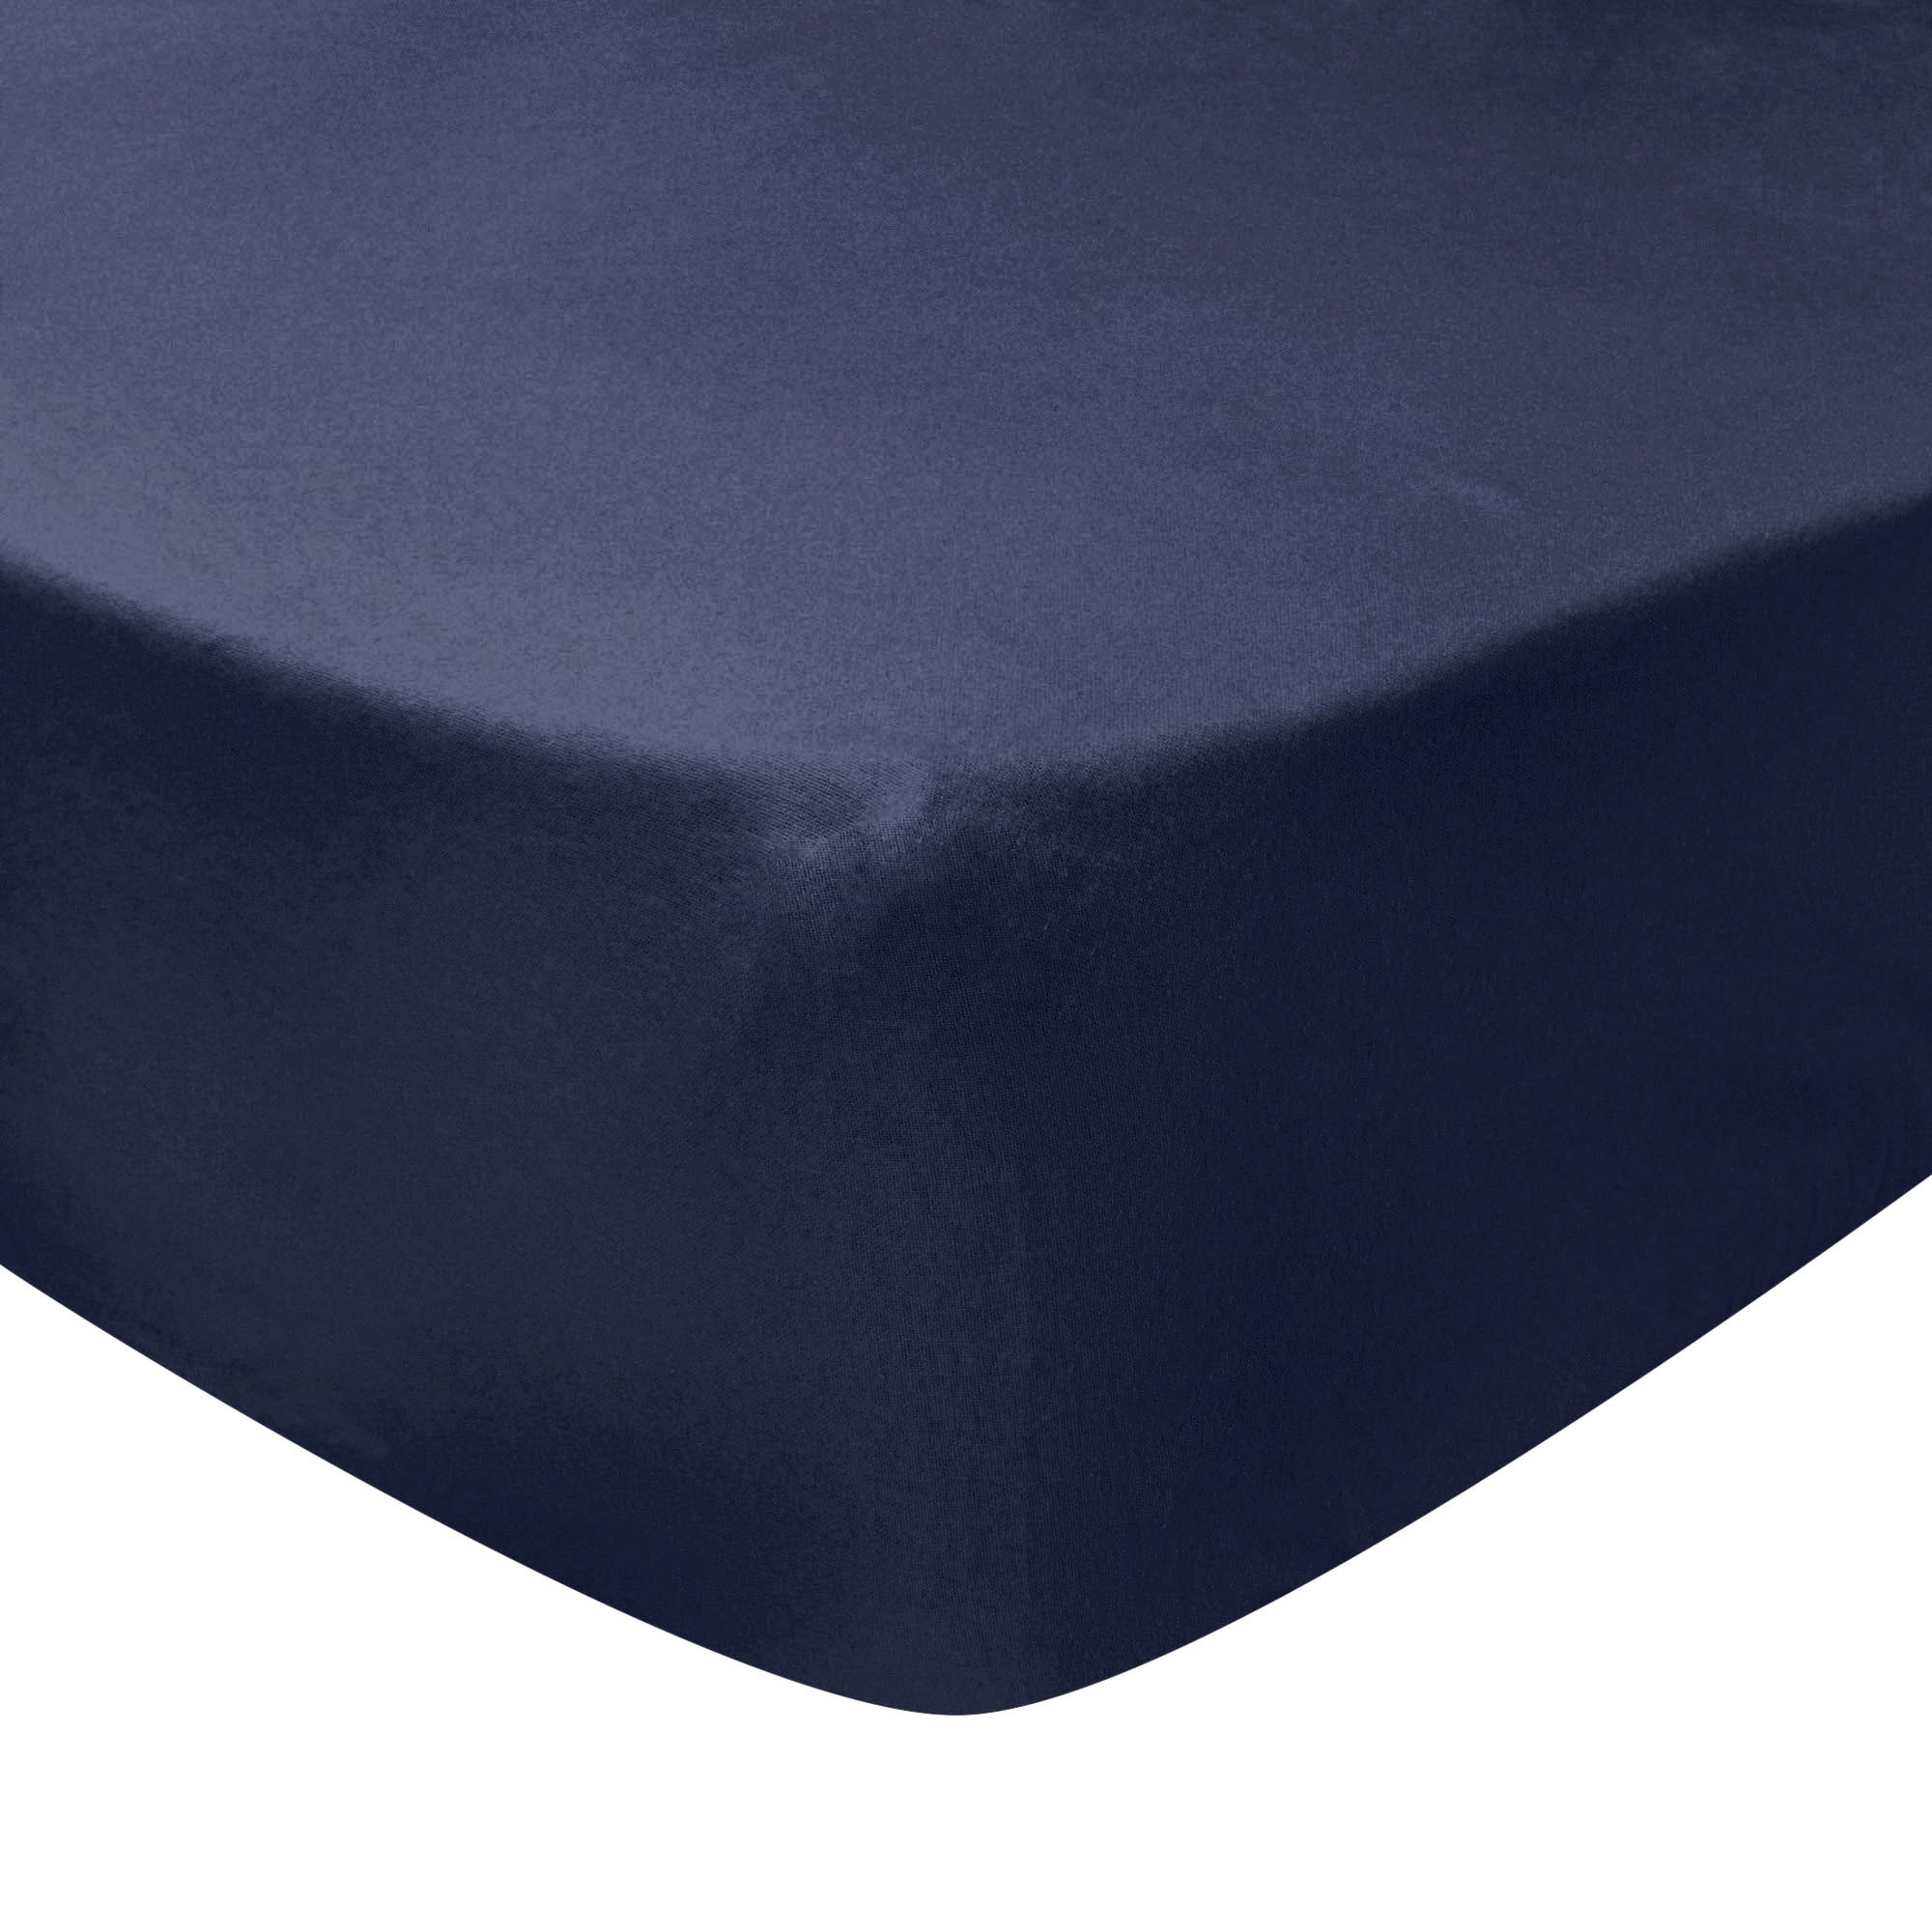 Photo of Luxury brushed cotton standard 28cm fitted sheet navy